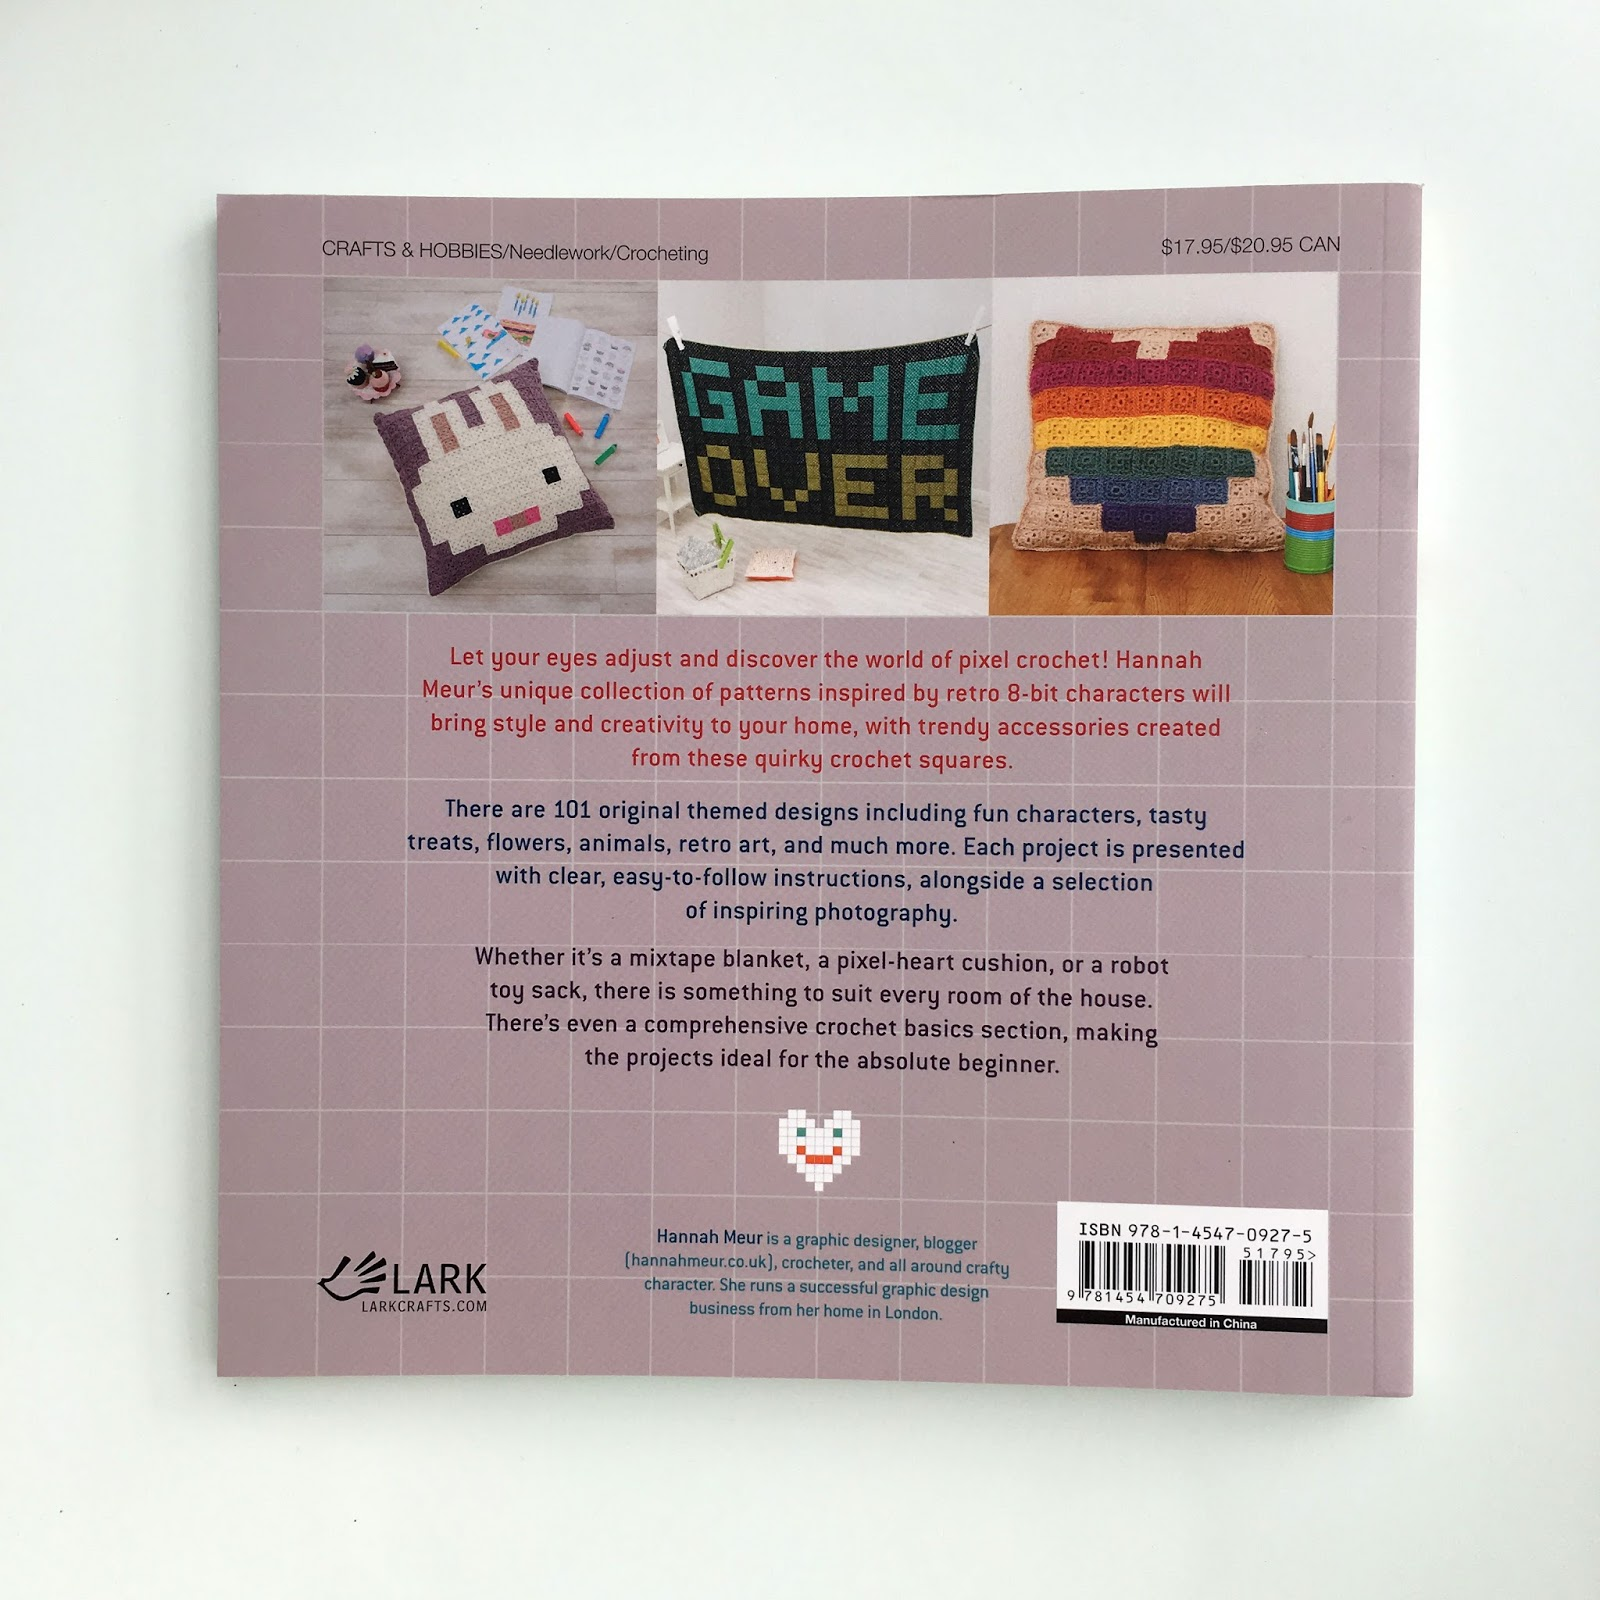 If you're interested in getting a copy, visit your local craft stores or  online here.